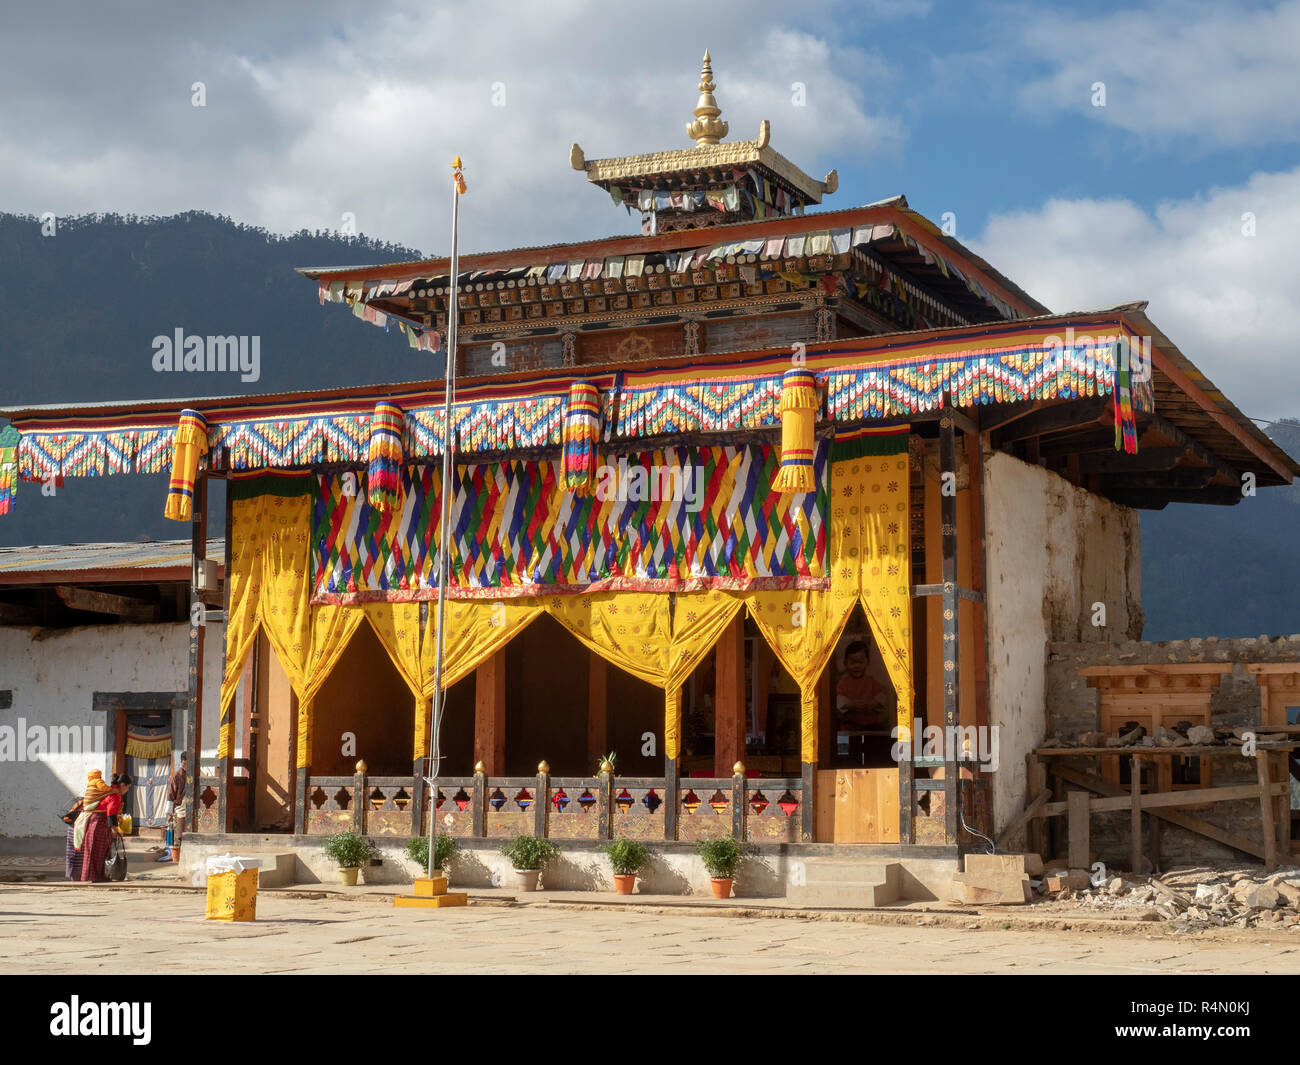 Gangtey Monastery, Bhutan, decorated for the Black-necked Crane festival - Stock Image